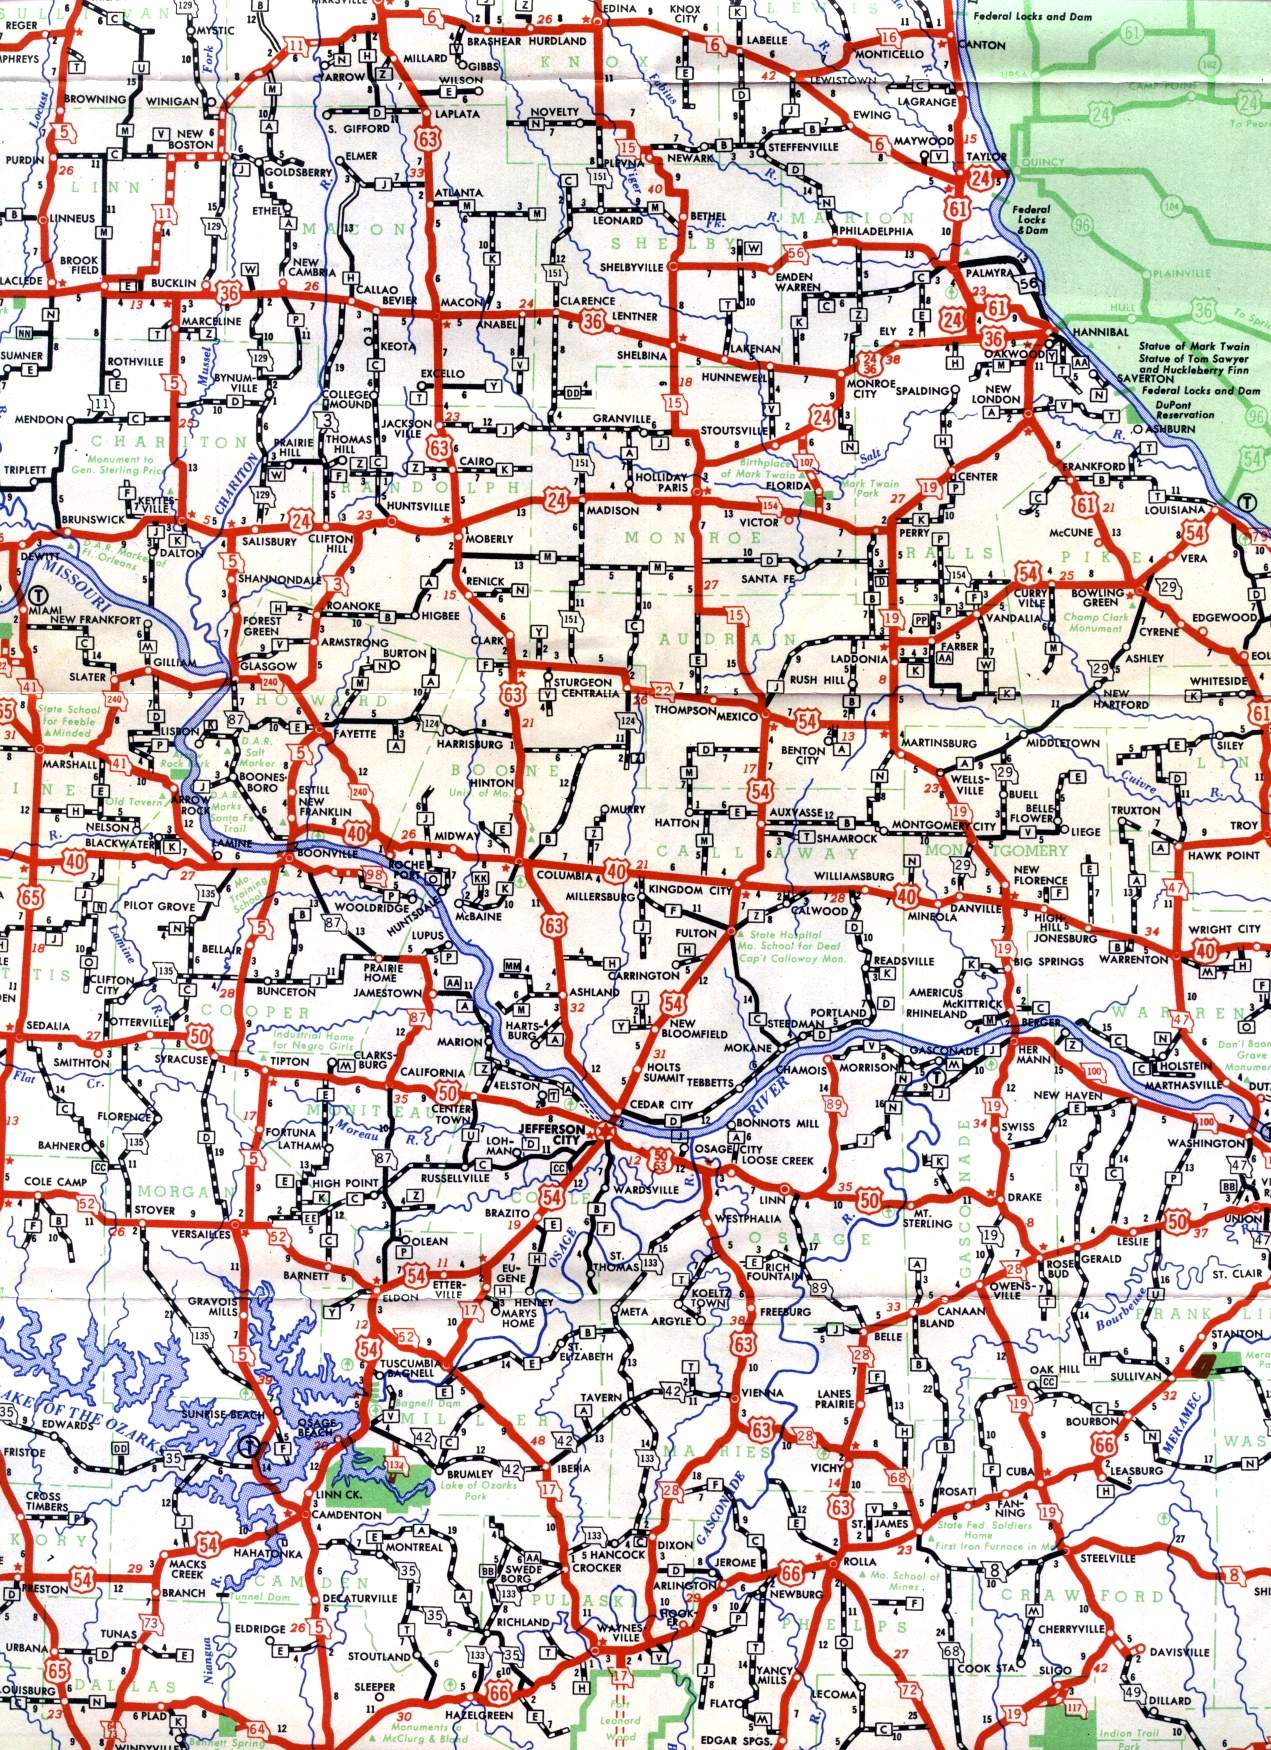 Missouri Highways Unofficial Section Of Official Highway Map - Highway map of missouri